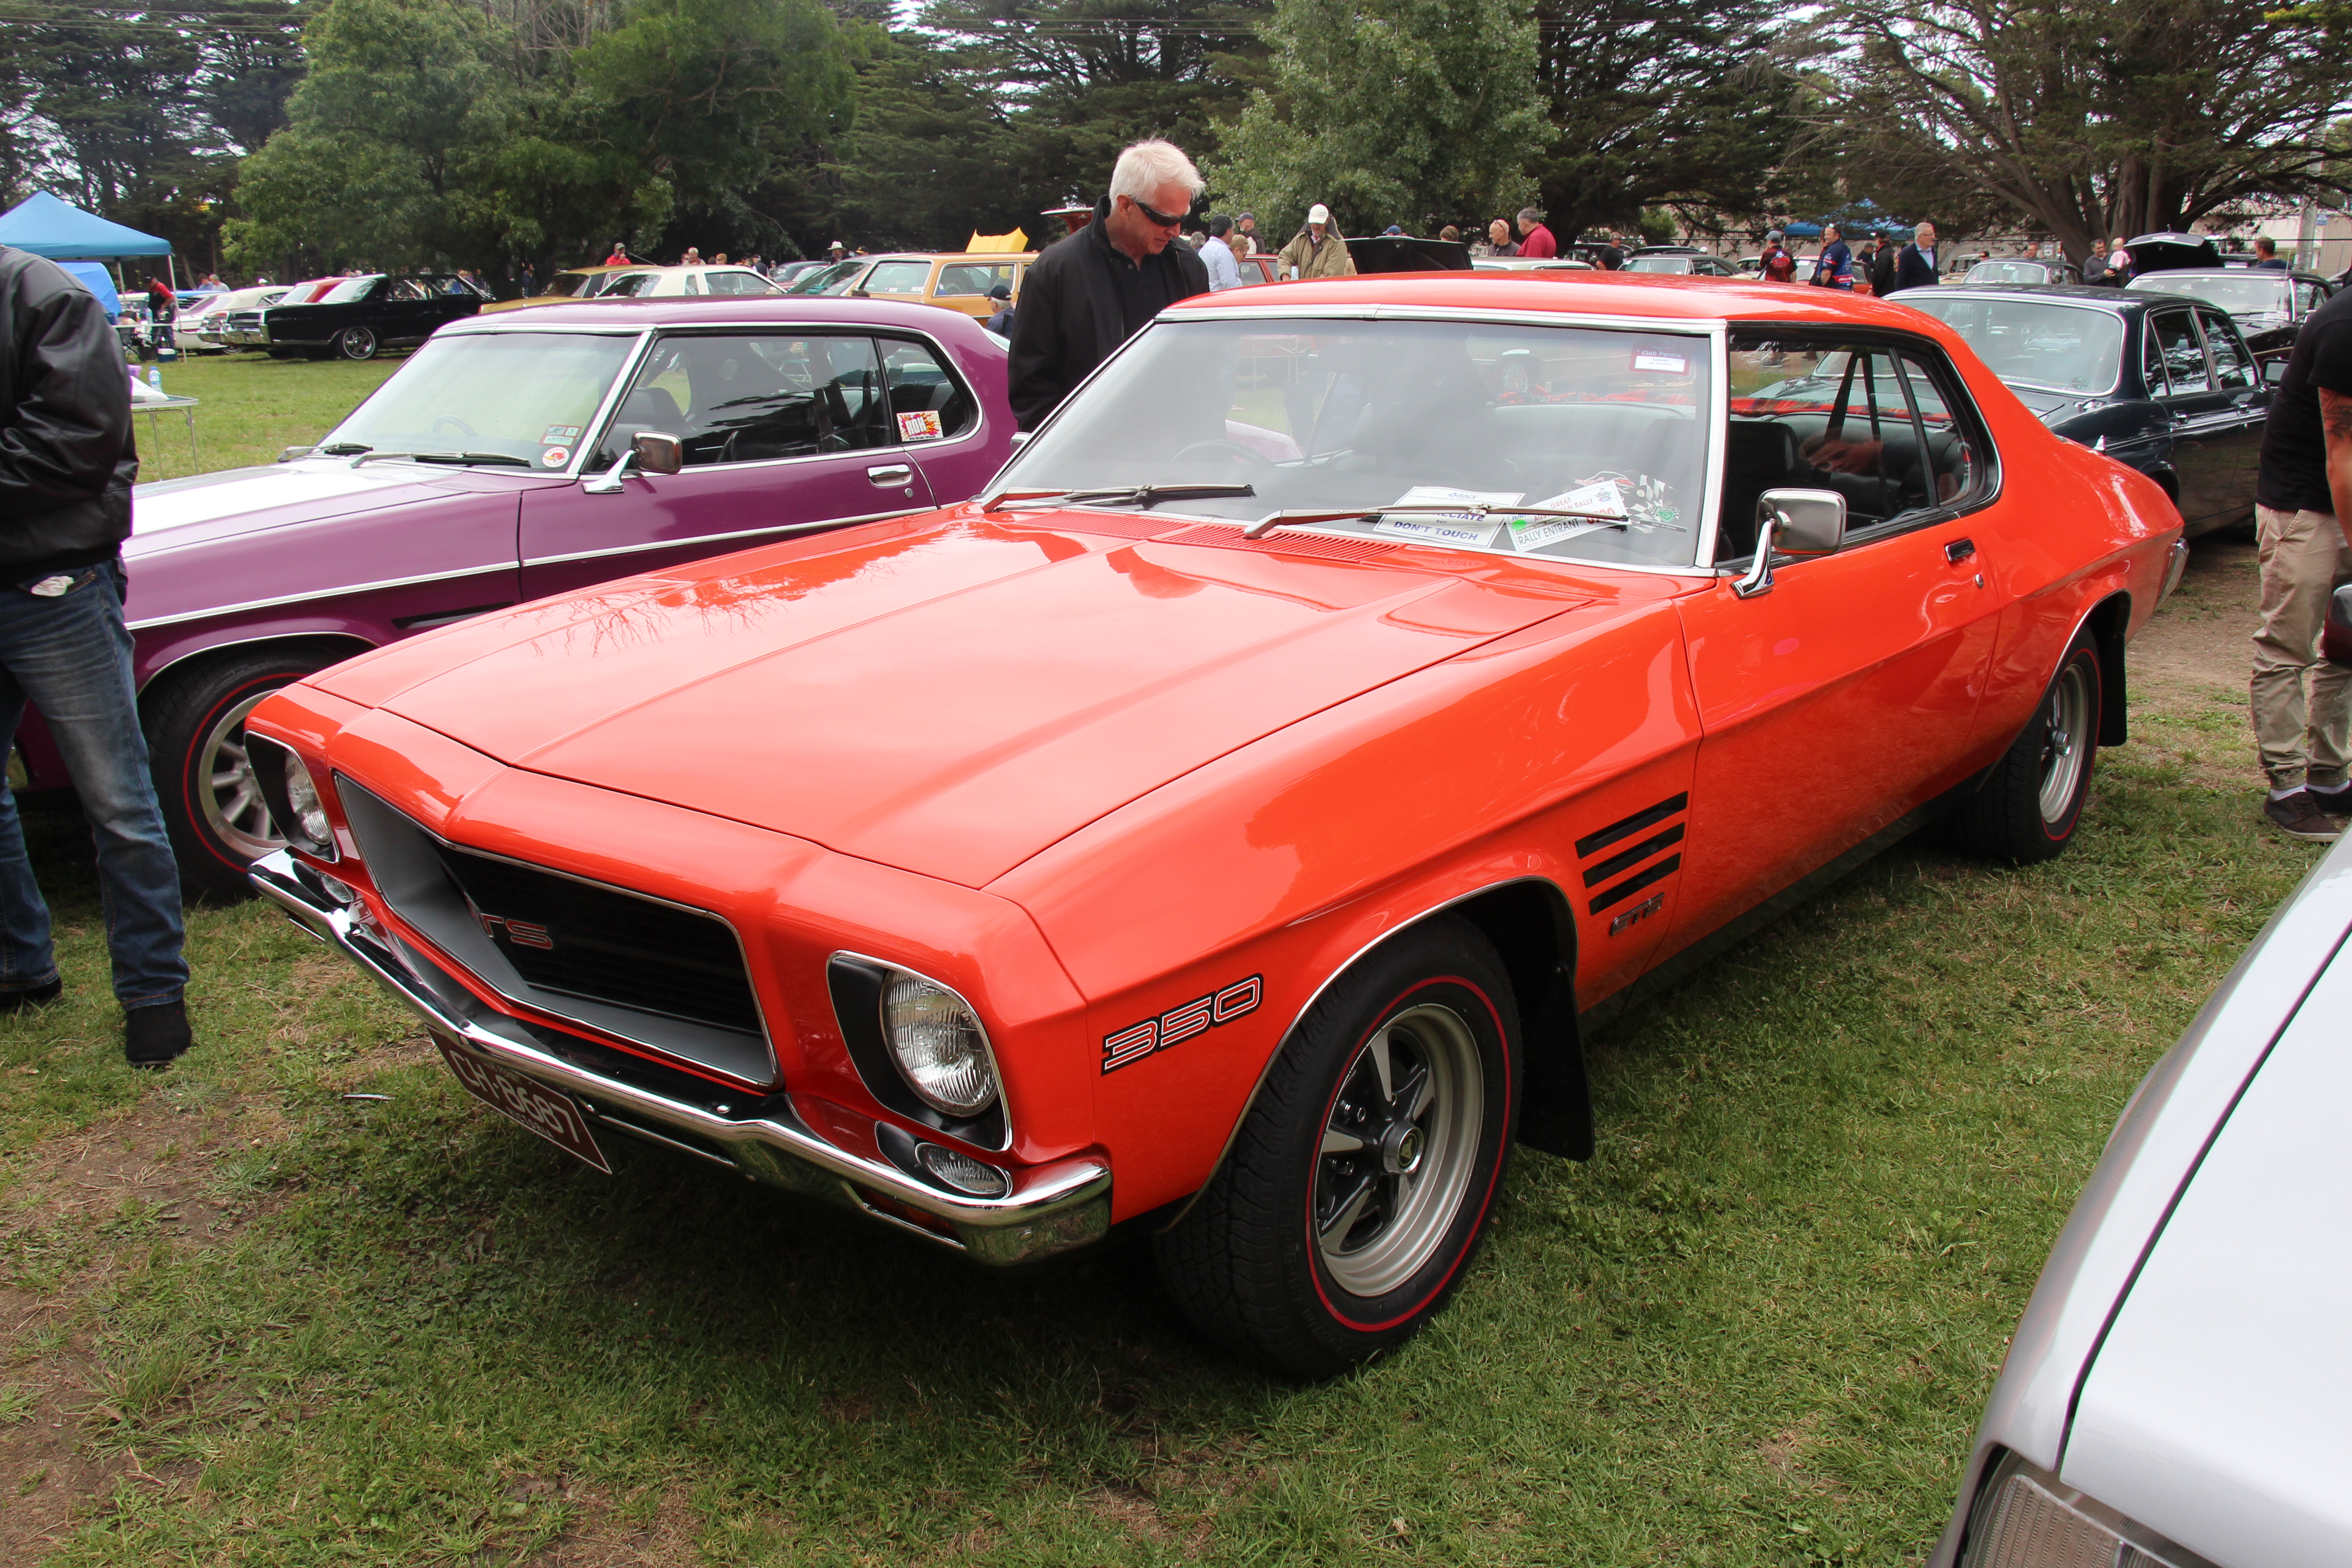 Holden HJ Monaro GTS 5Lt Coupe Auctions - Lot 50 - Shannons